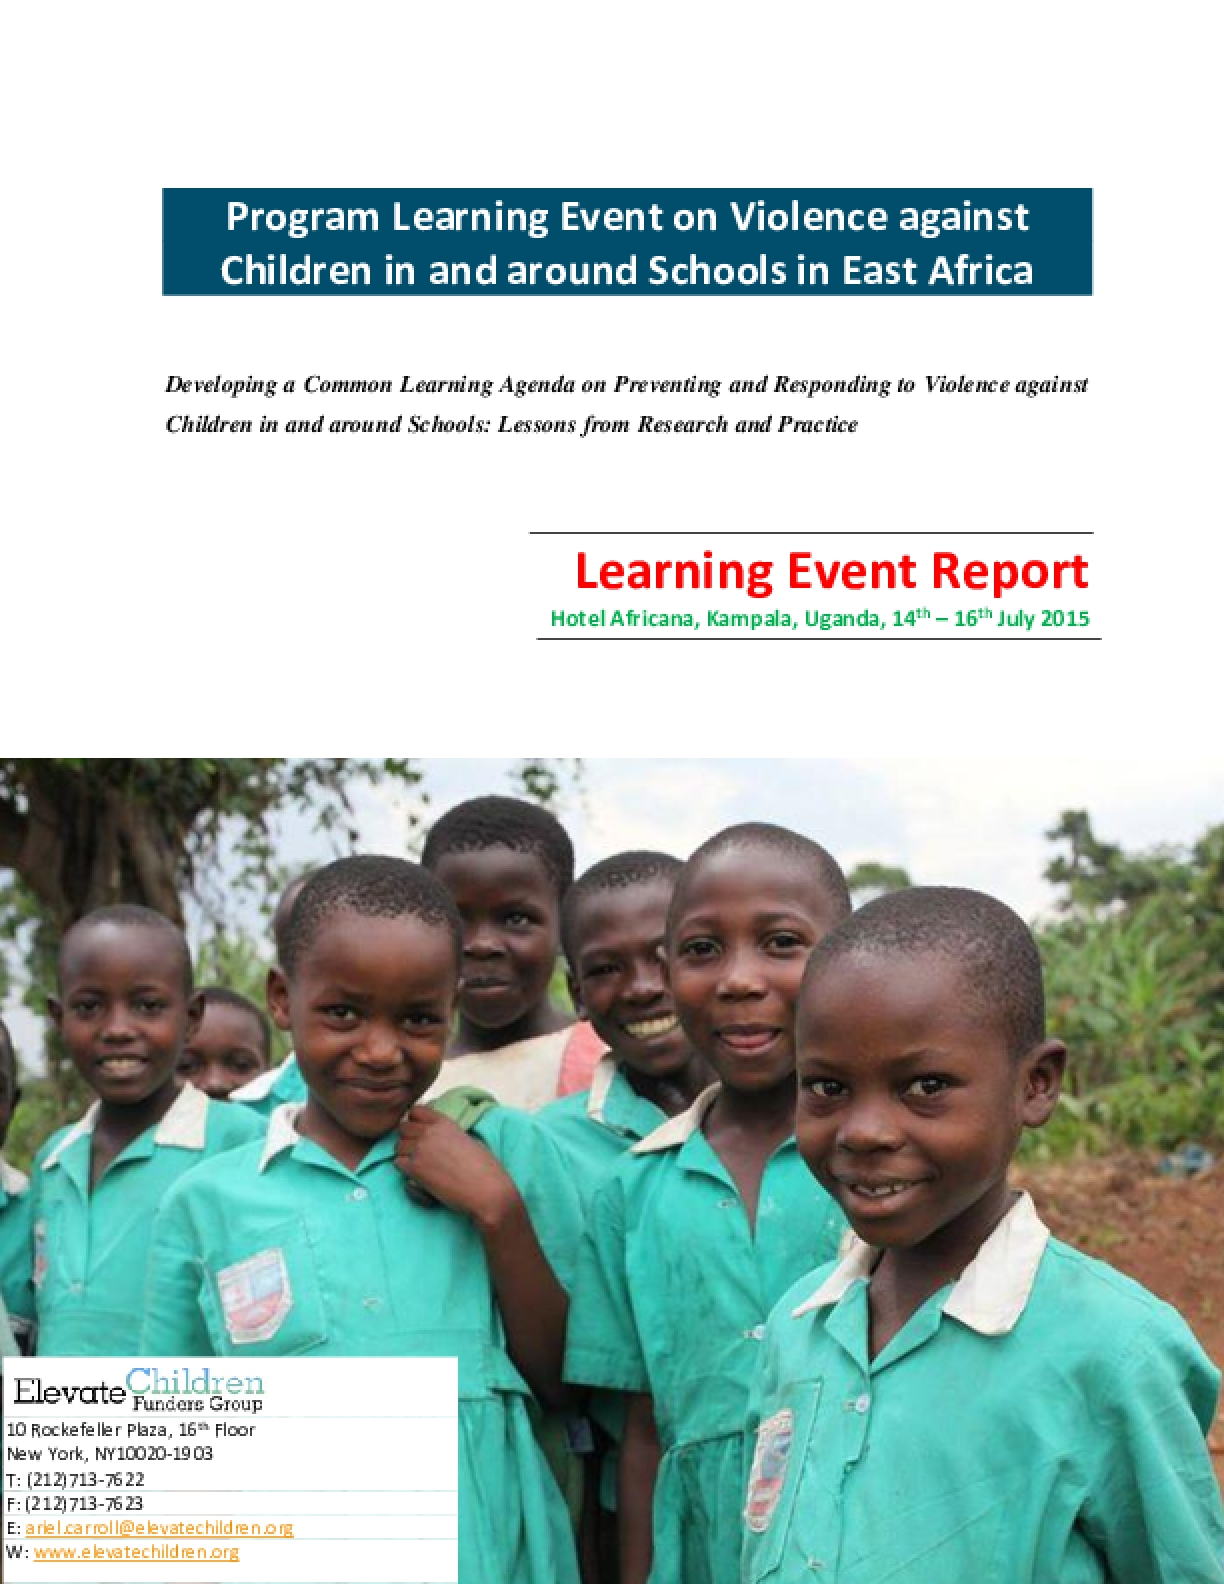 Report on Program Learning Event on Preventing and Responding to Violence Against Children in Schools July 2015